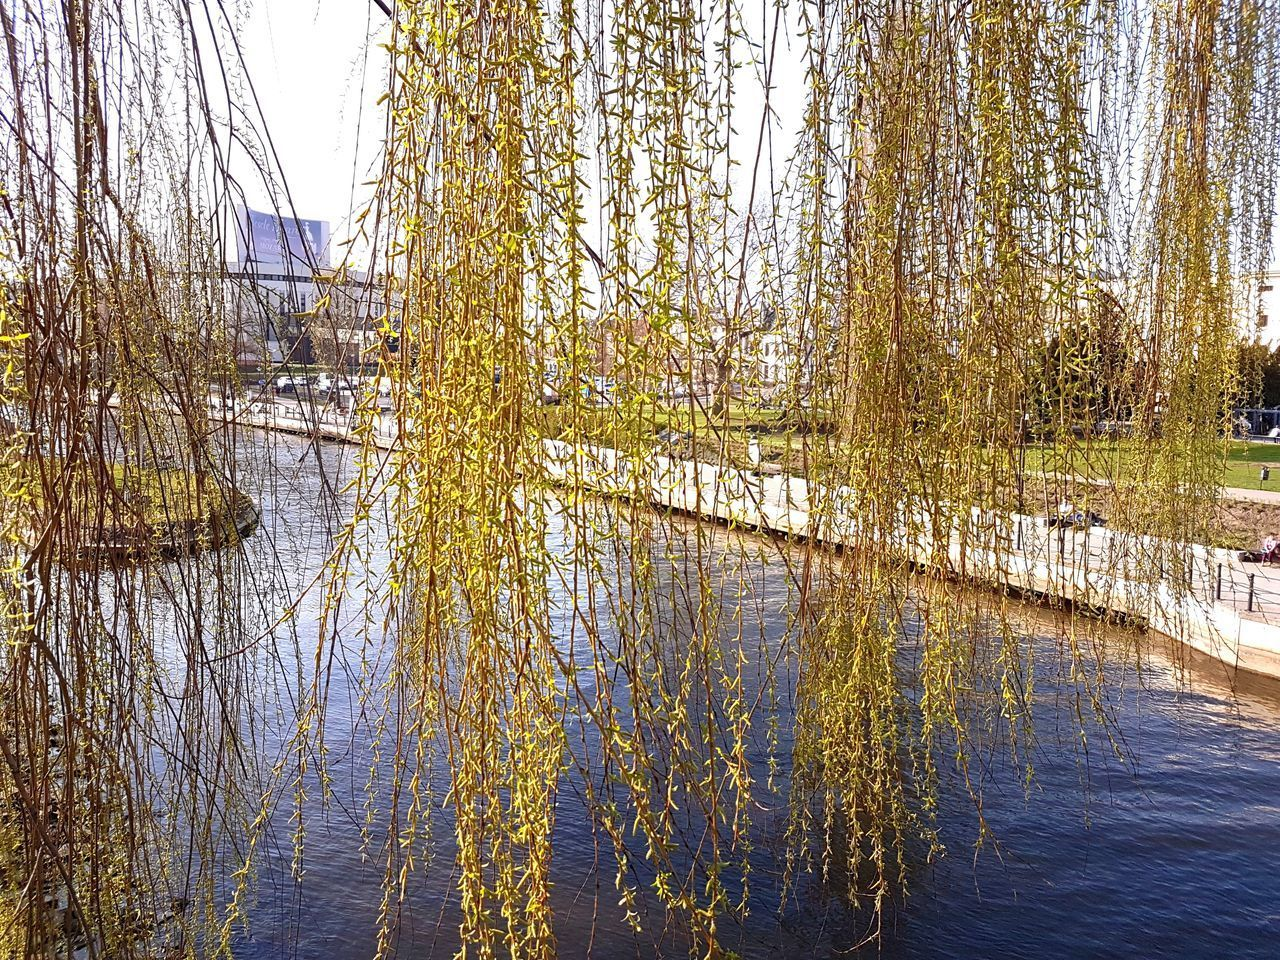 Full Frame Tree No People Water Nature Growth Day Outdoors Close-up Poland Bydgoszcz Travel Destinations River Reflection Backgrounds Sky Gold Colored Beauty In Nature Scenics Refraction Frosted Glass Spring